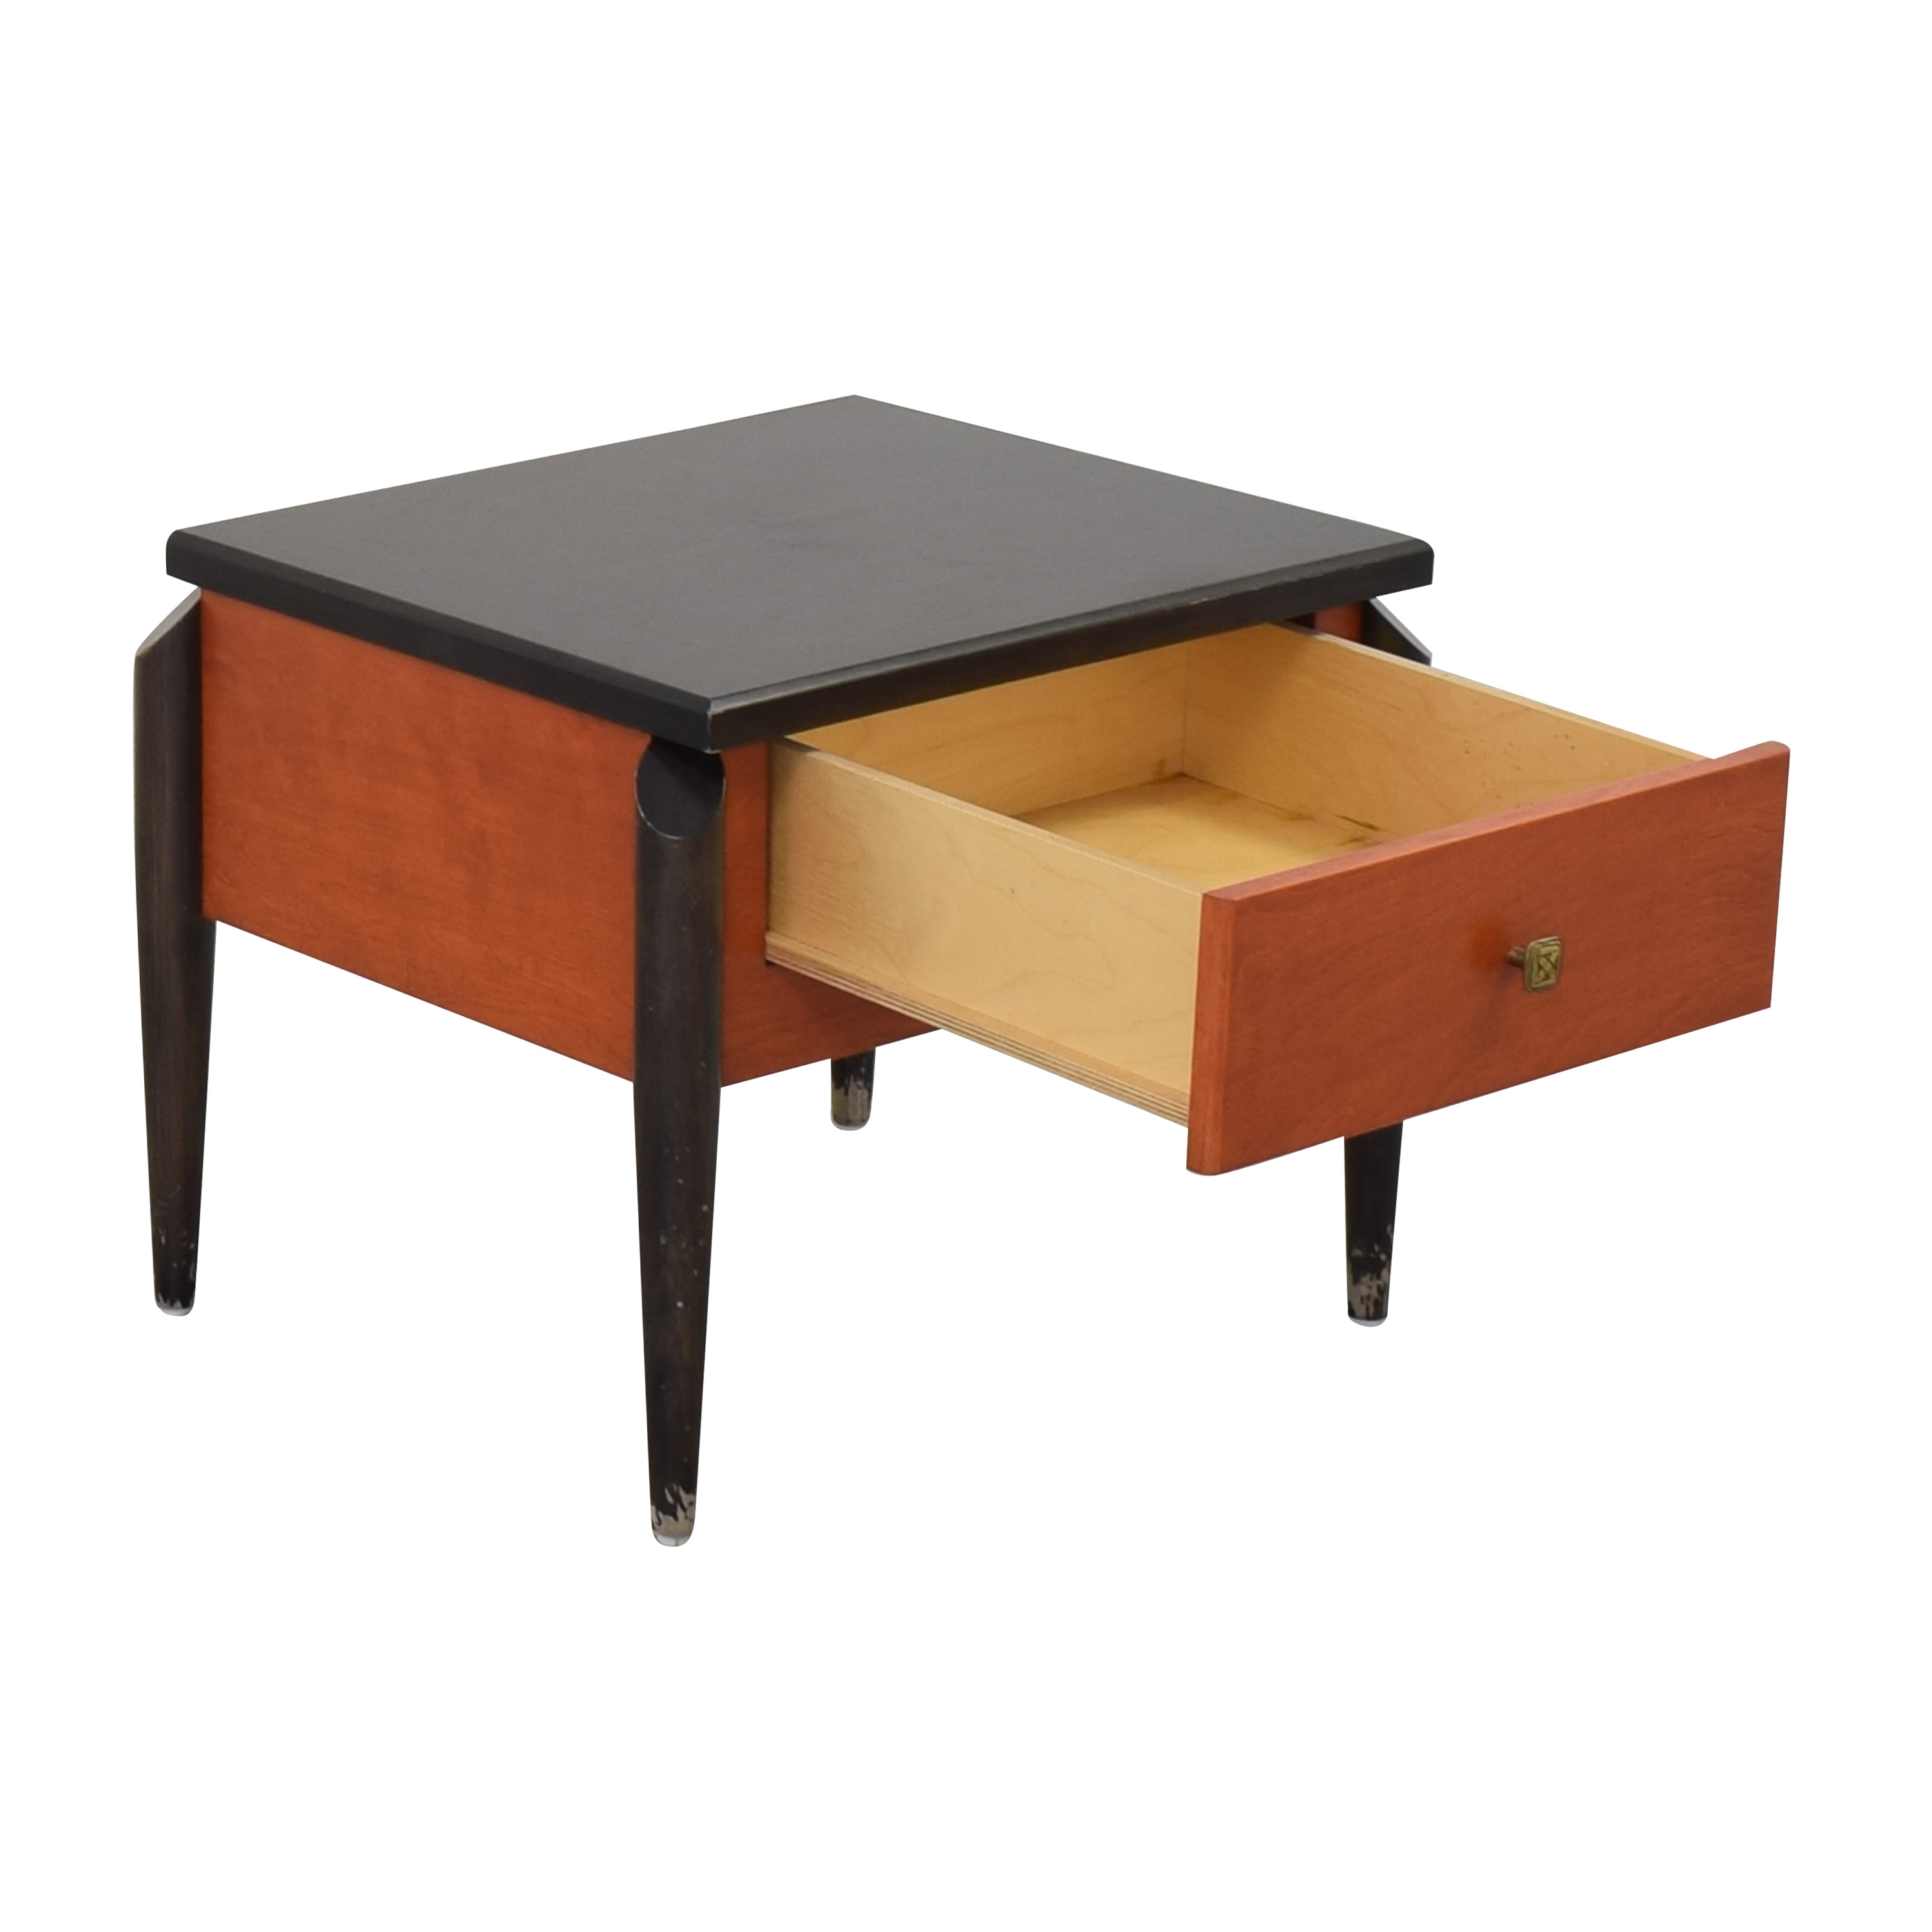 Interversion Interversion End Table coupon